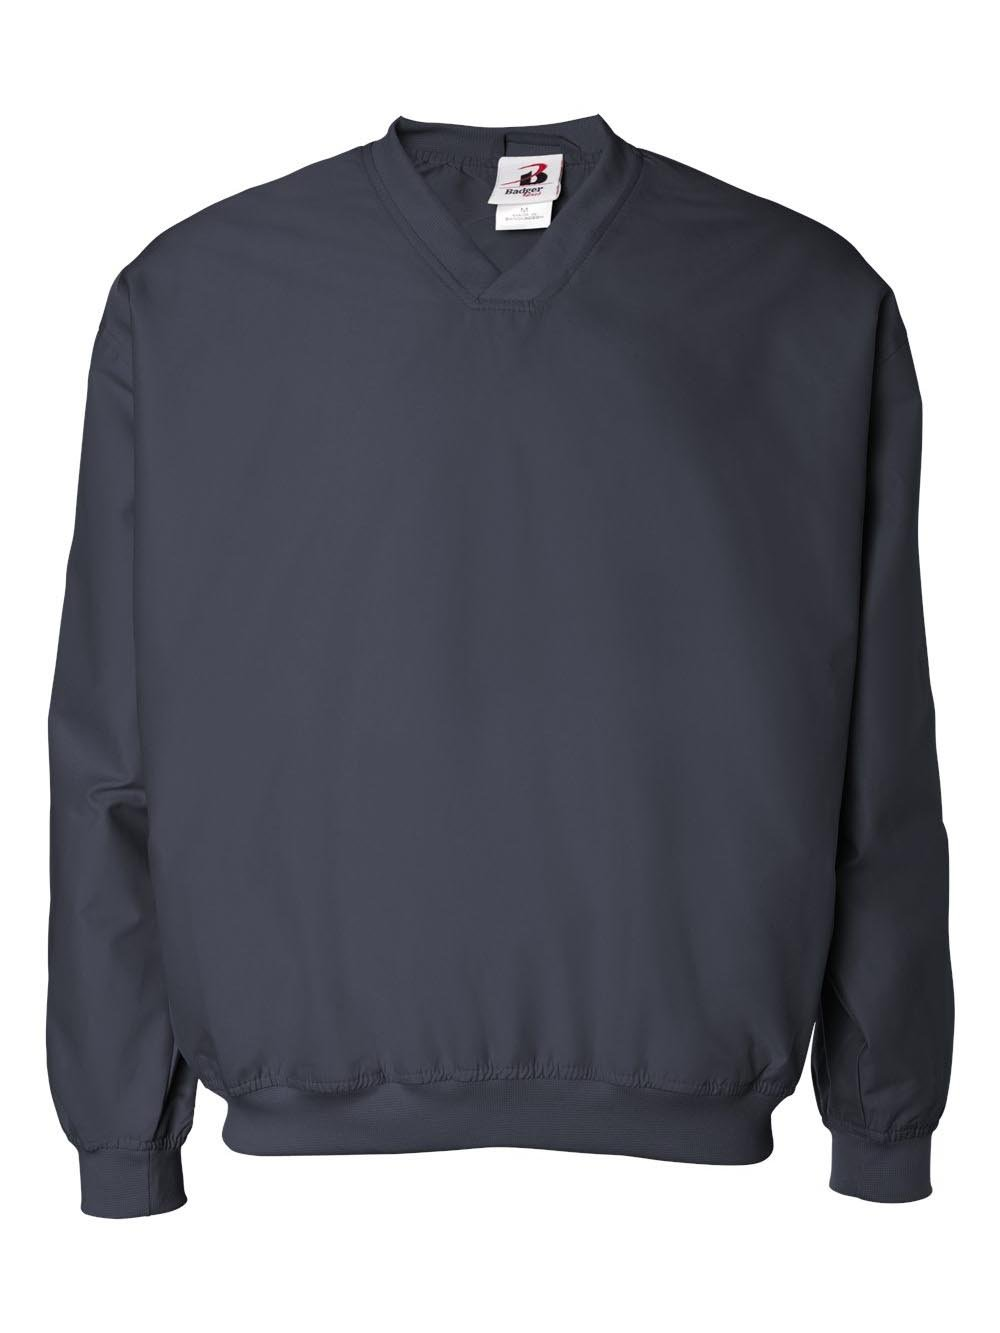 Badger Sport Microfiber Windshirt - 7618 - Navy - X-Large